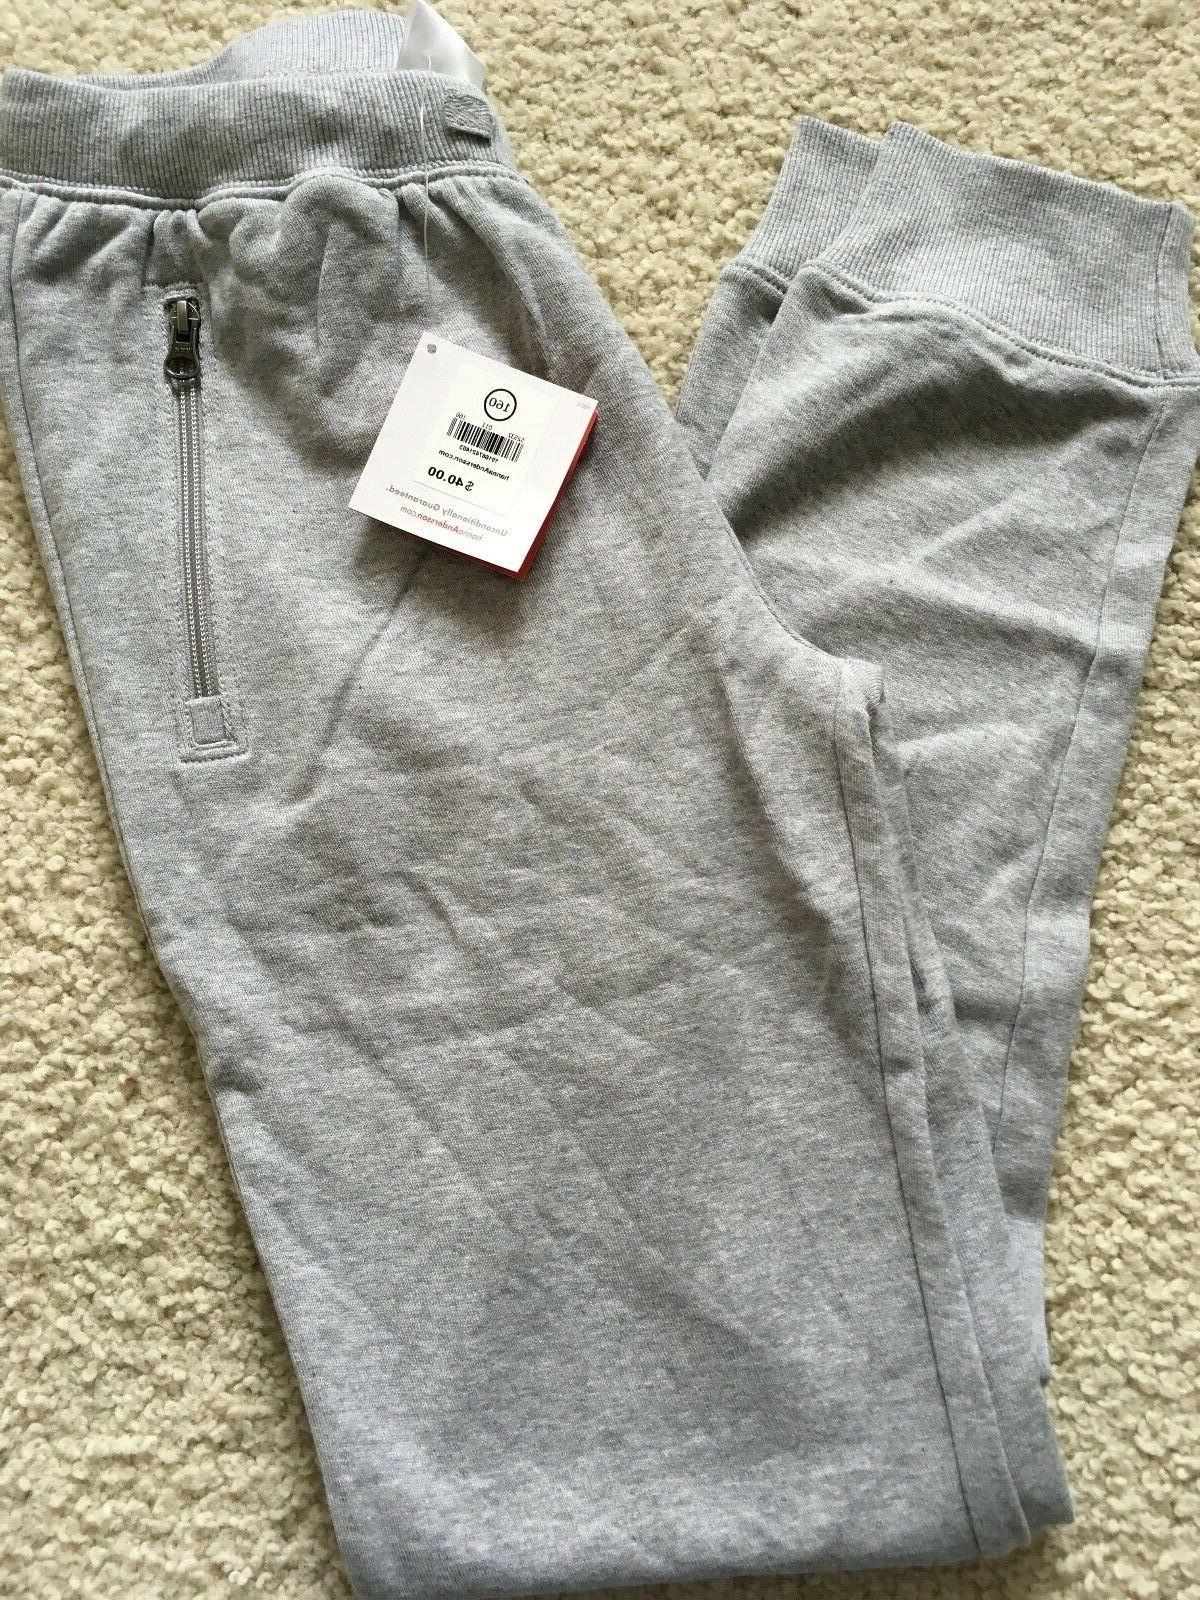 NWT HANNA ANDERSSON SWEATPANTS IN 160